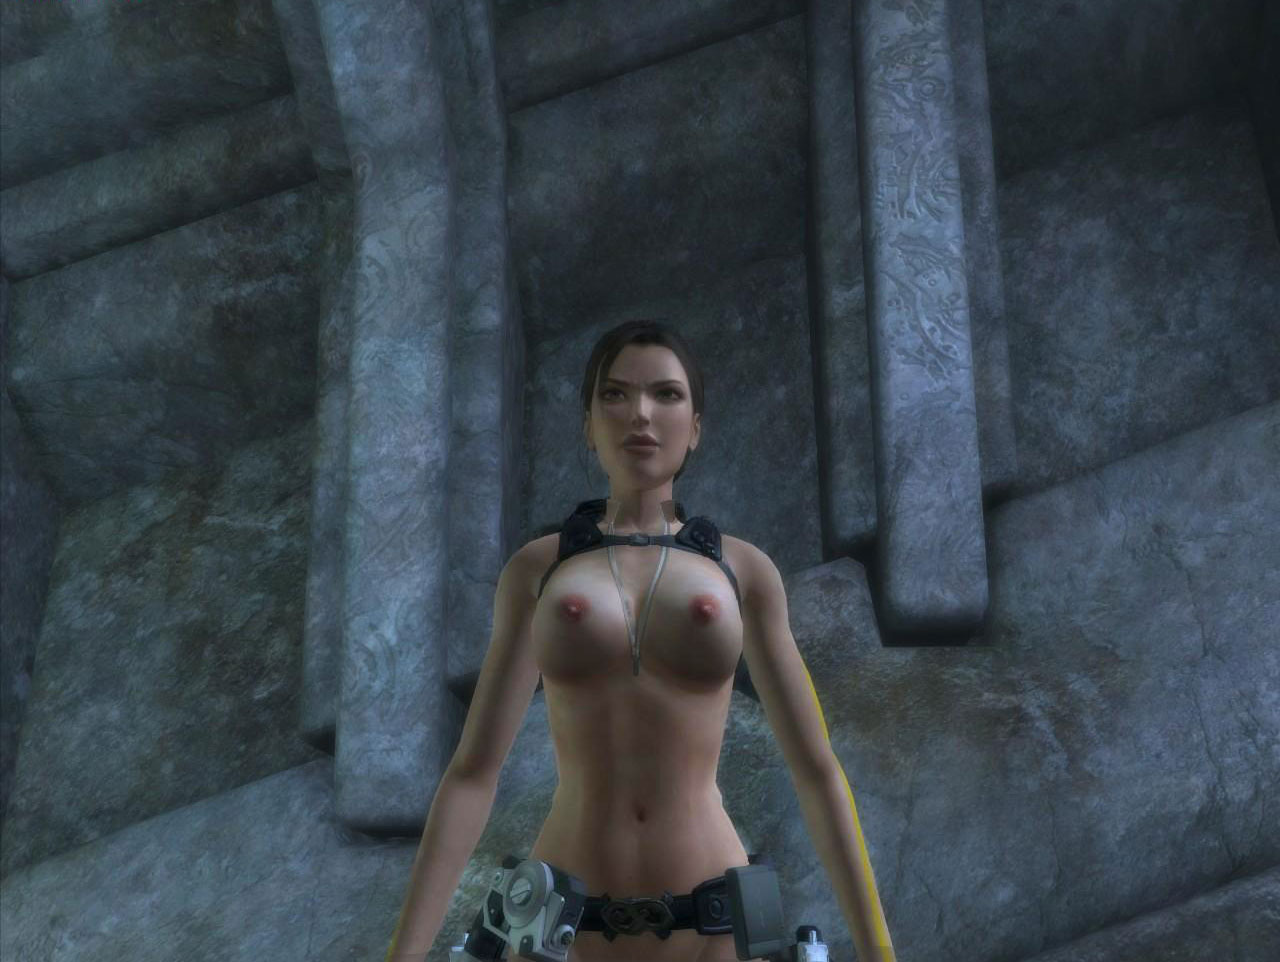 Lara croft nude tombraider hardcore photos